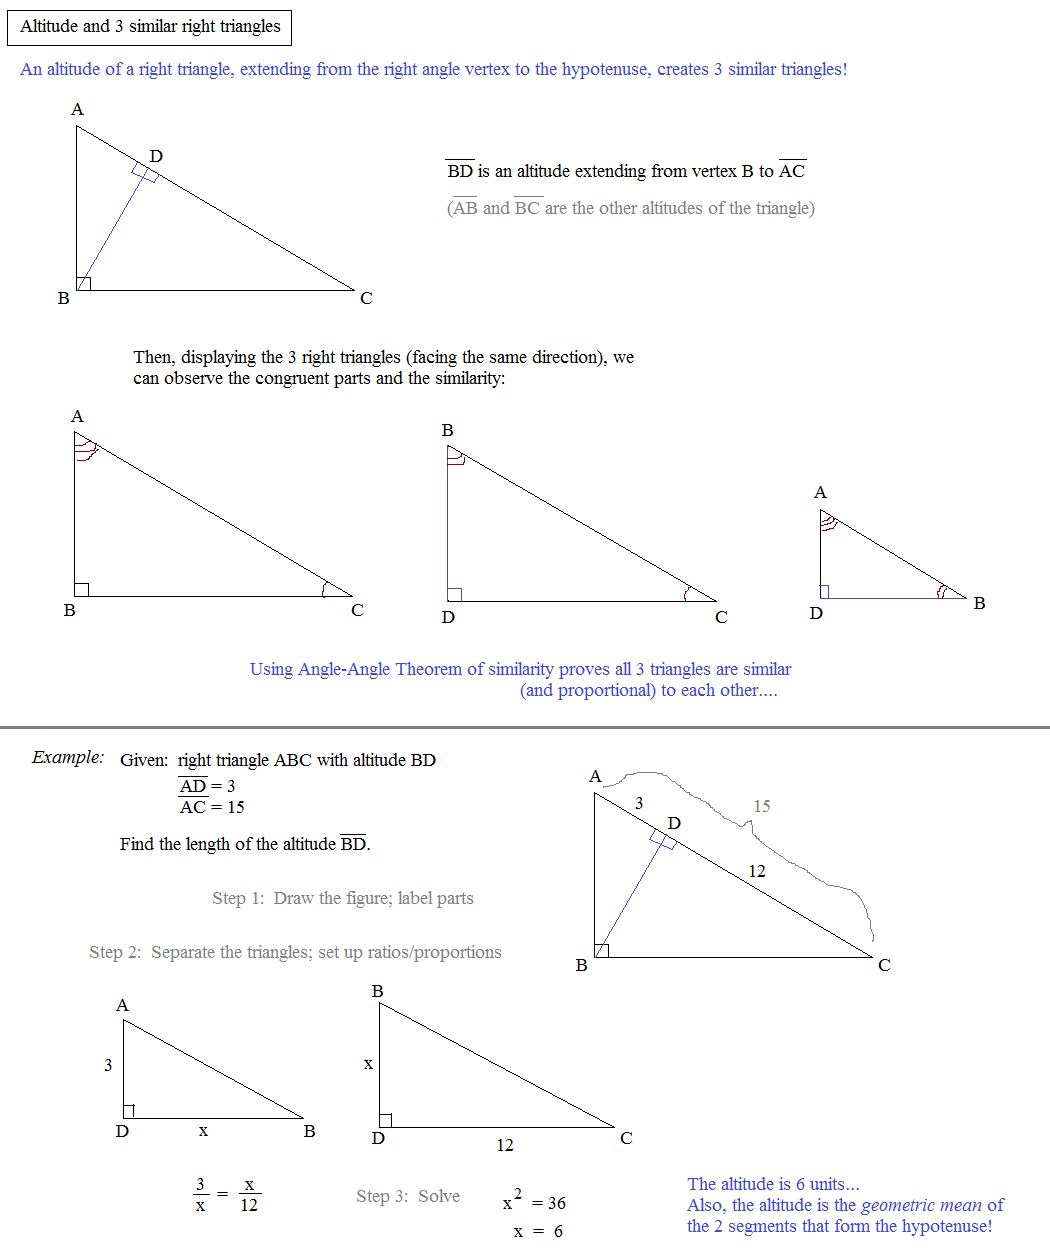 similar_triangles_altitude_and_right_triangles.51203231_large.png